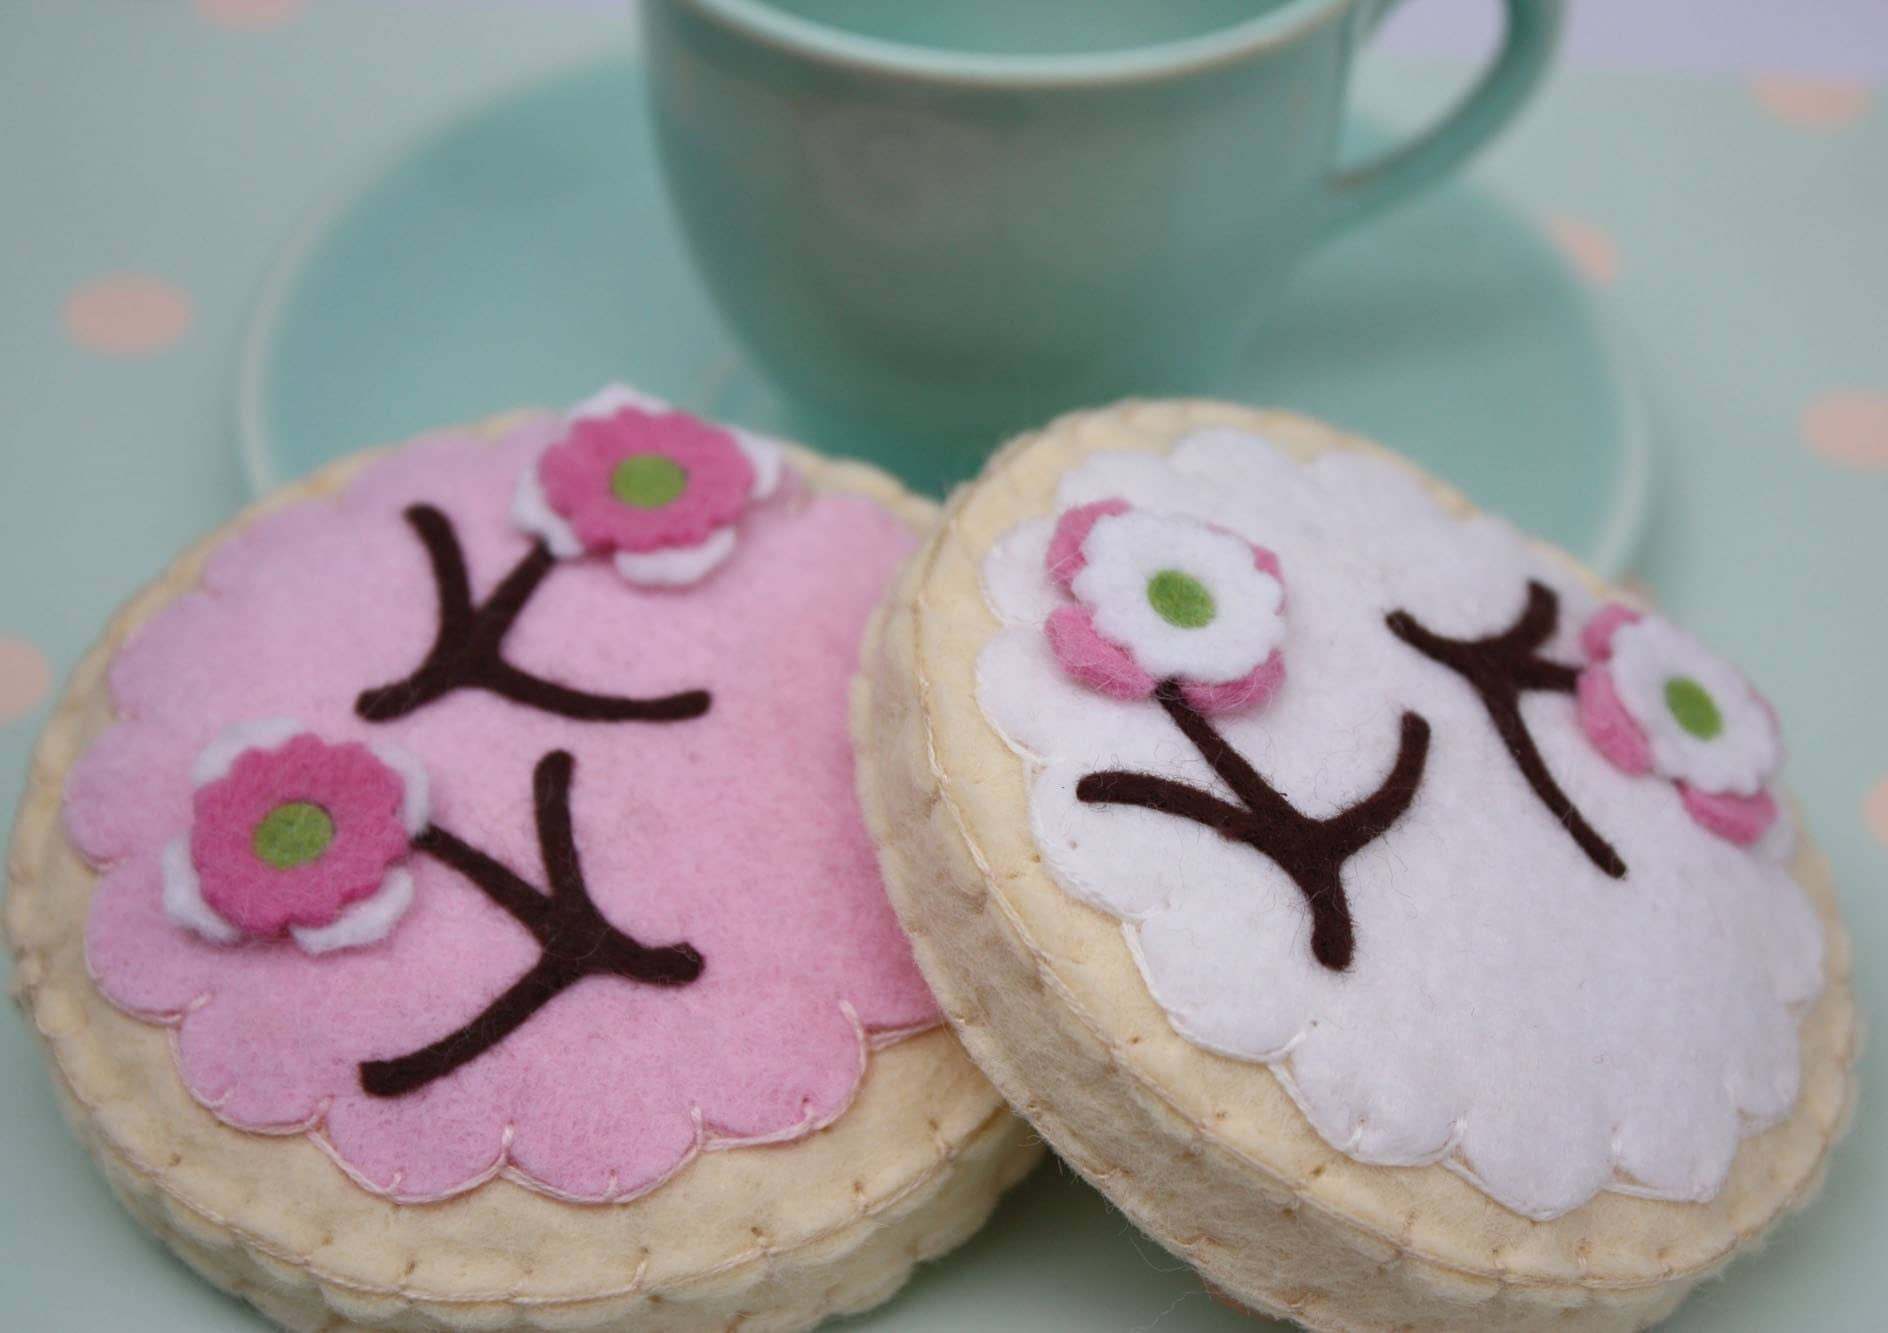 Two Felt Tea Pink And White Cherry Blossom Sugar Cookies